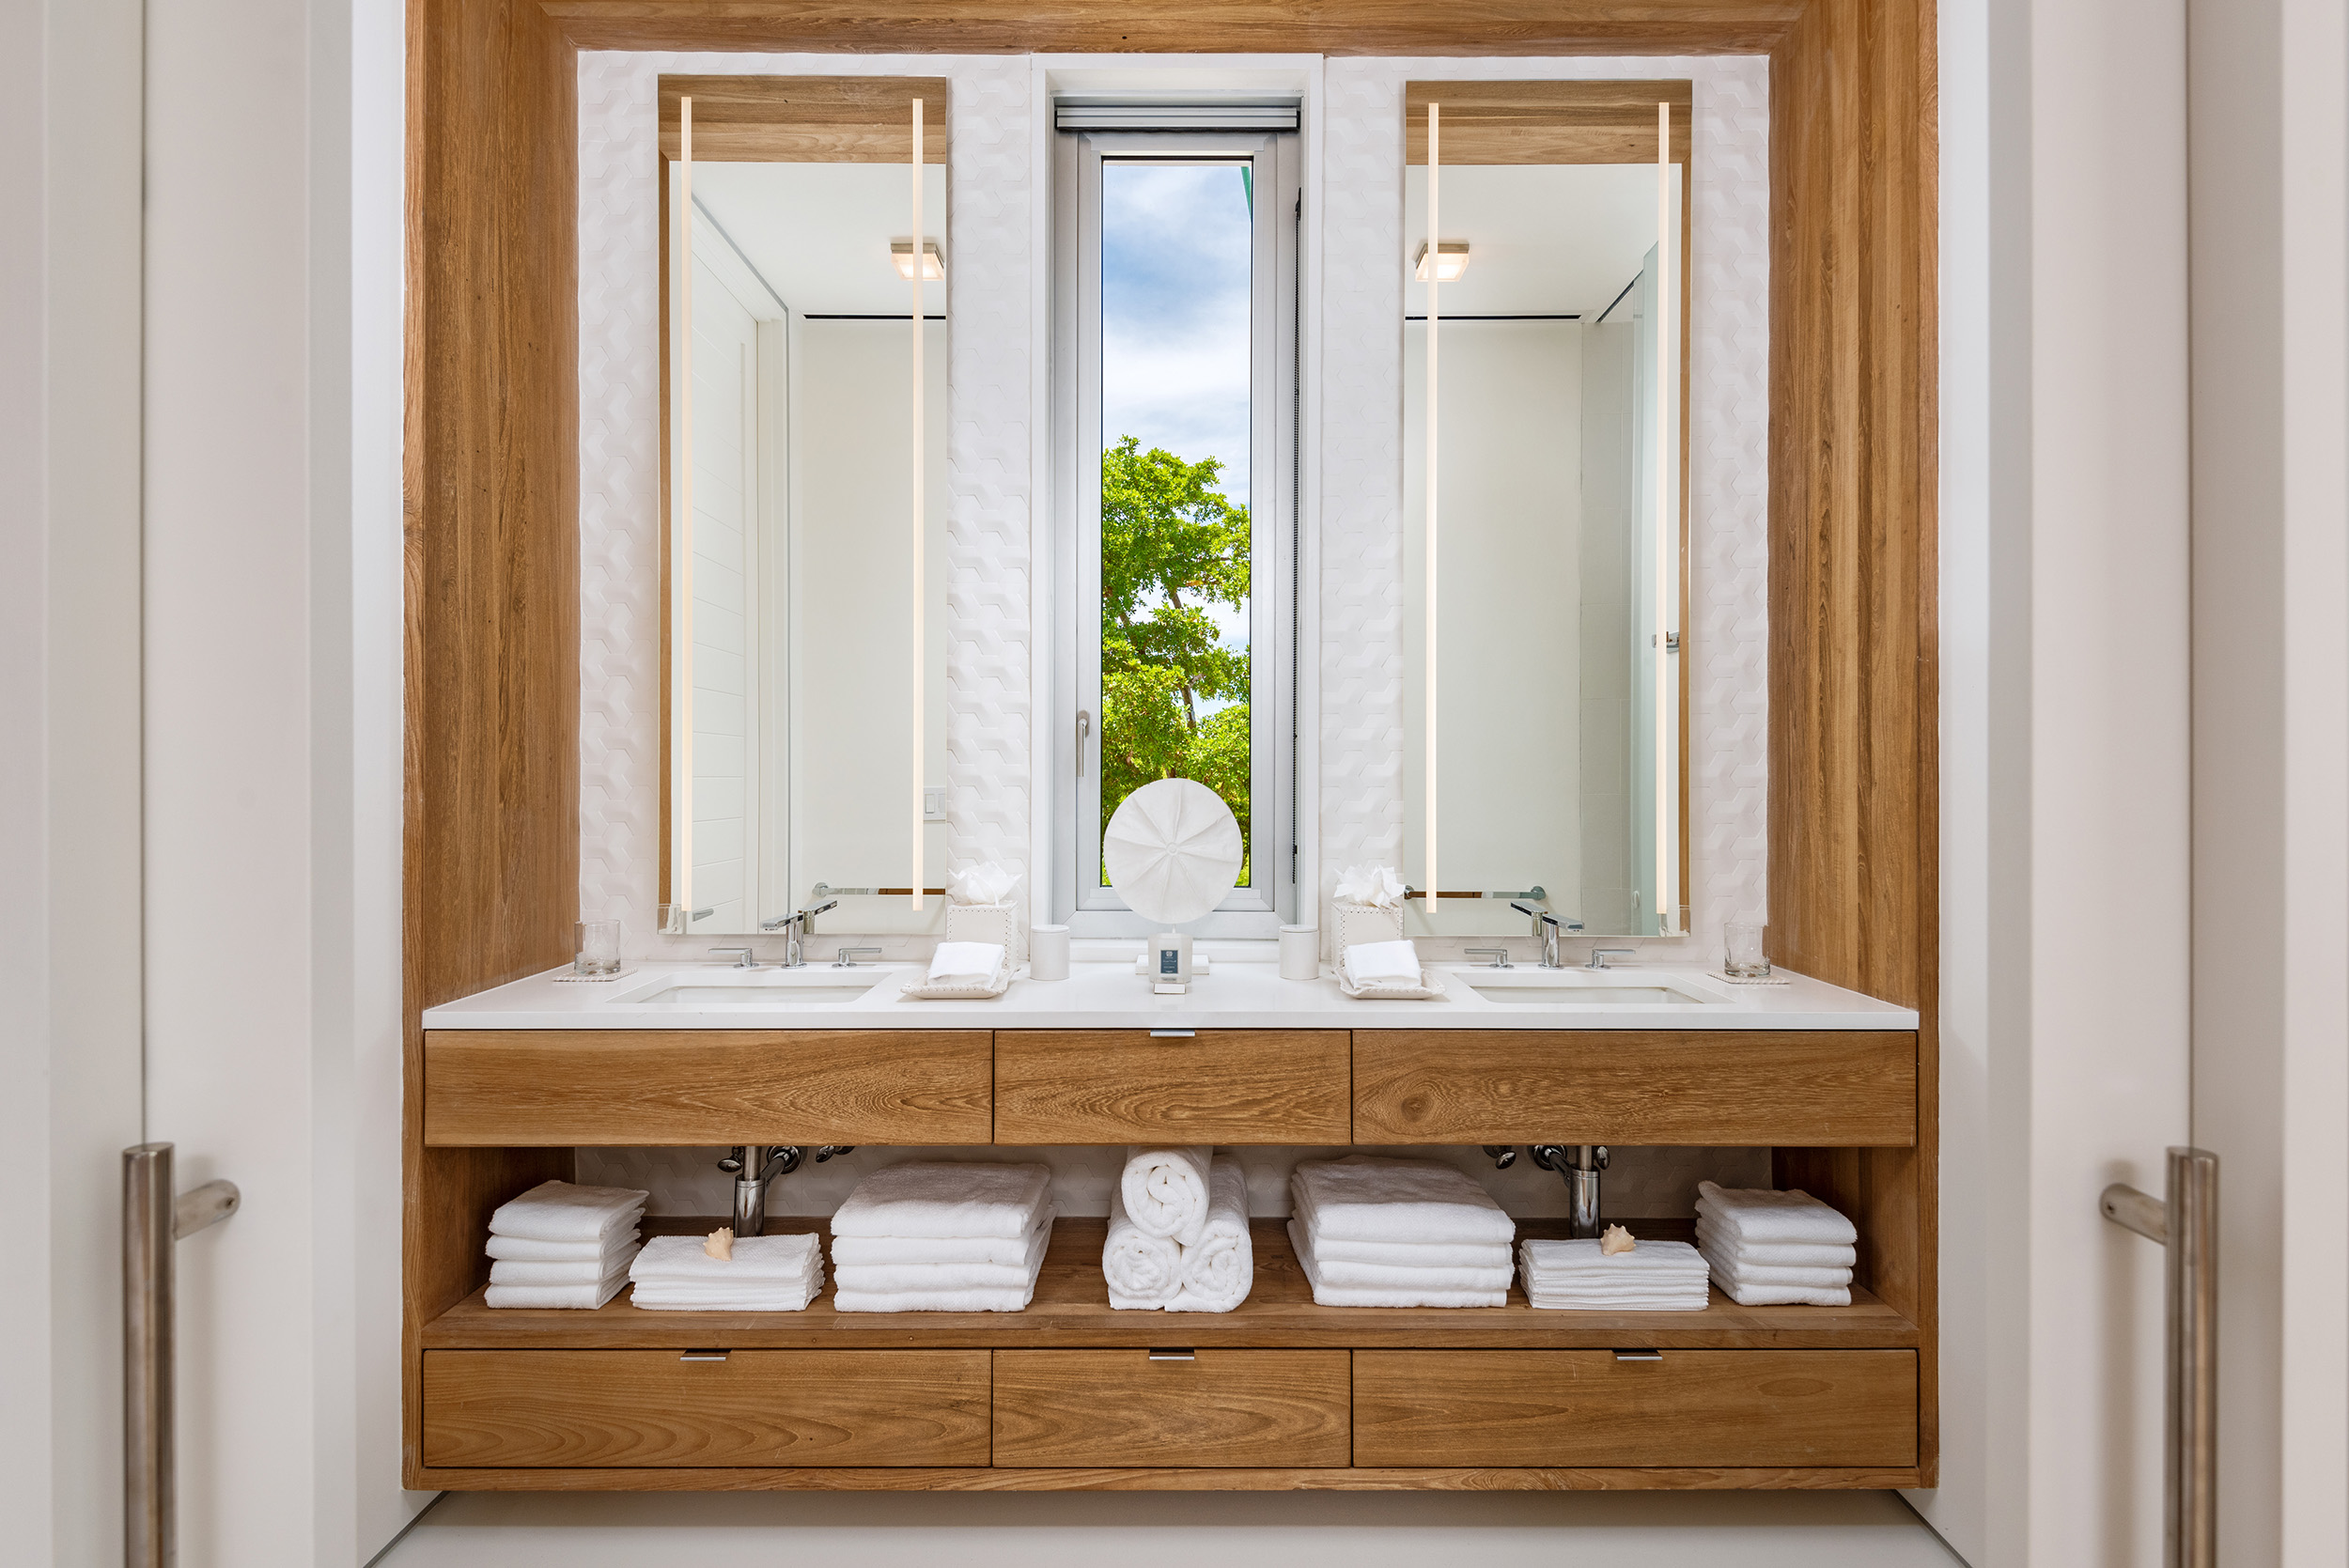 Emerald Pavilion - view of one of the bathroom vanities